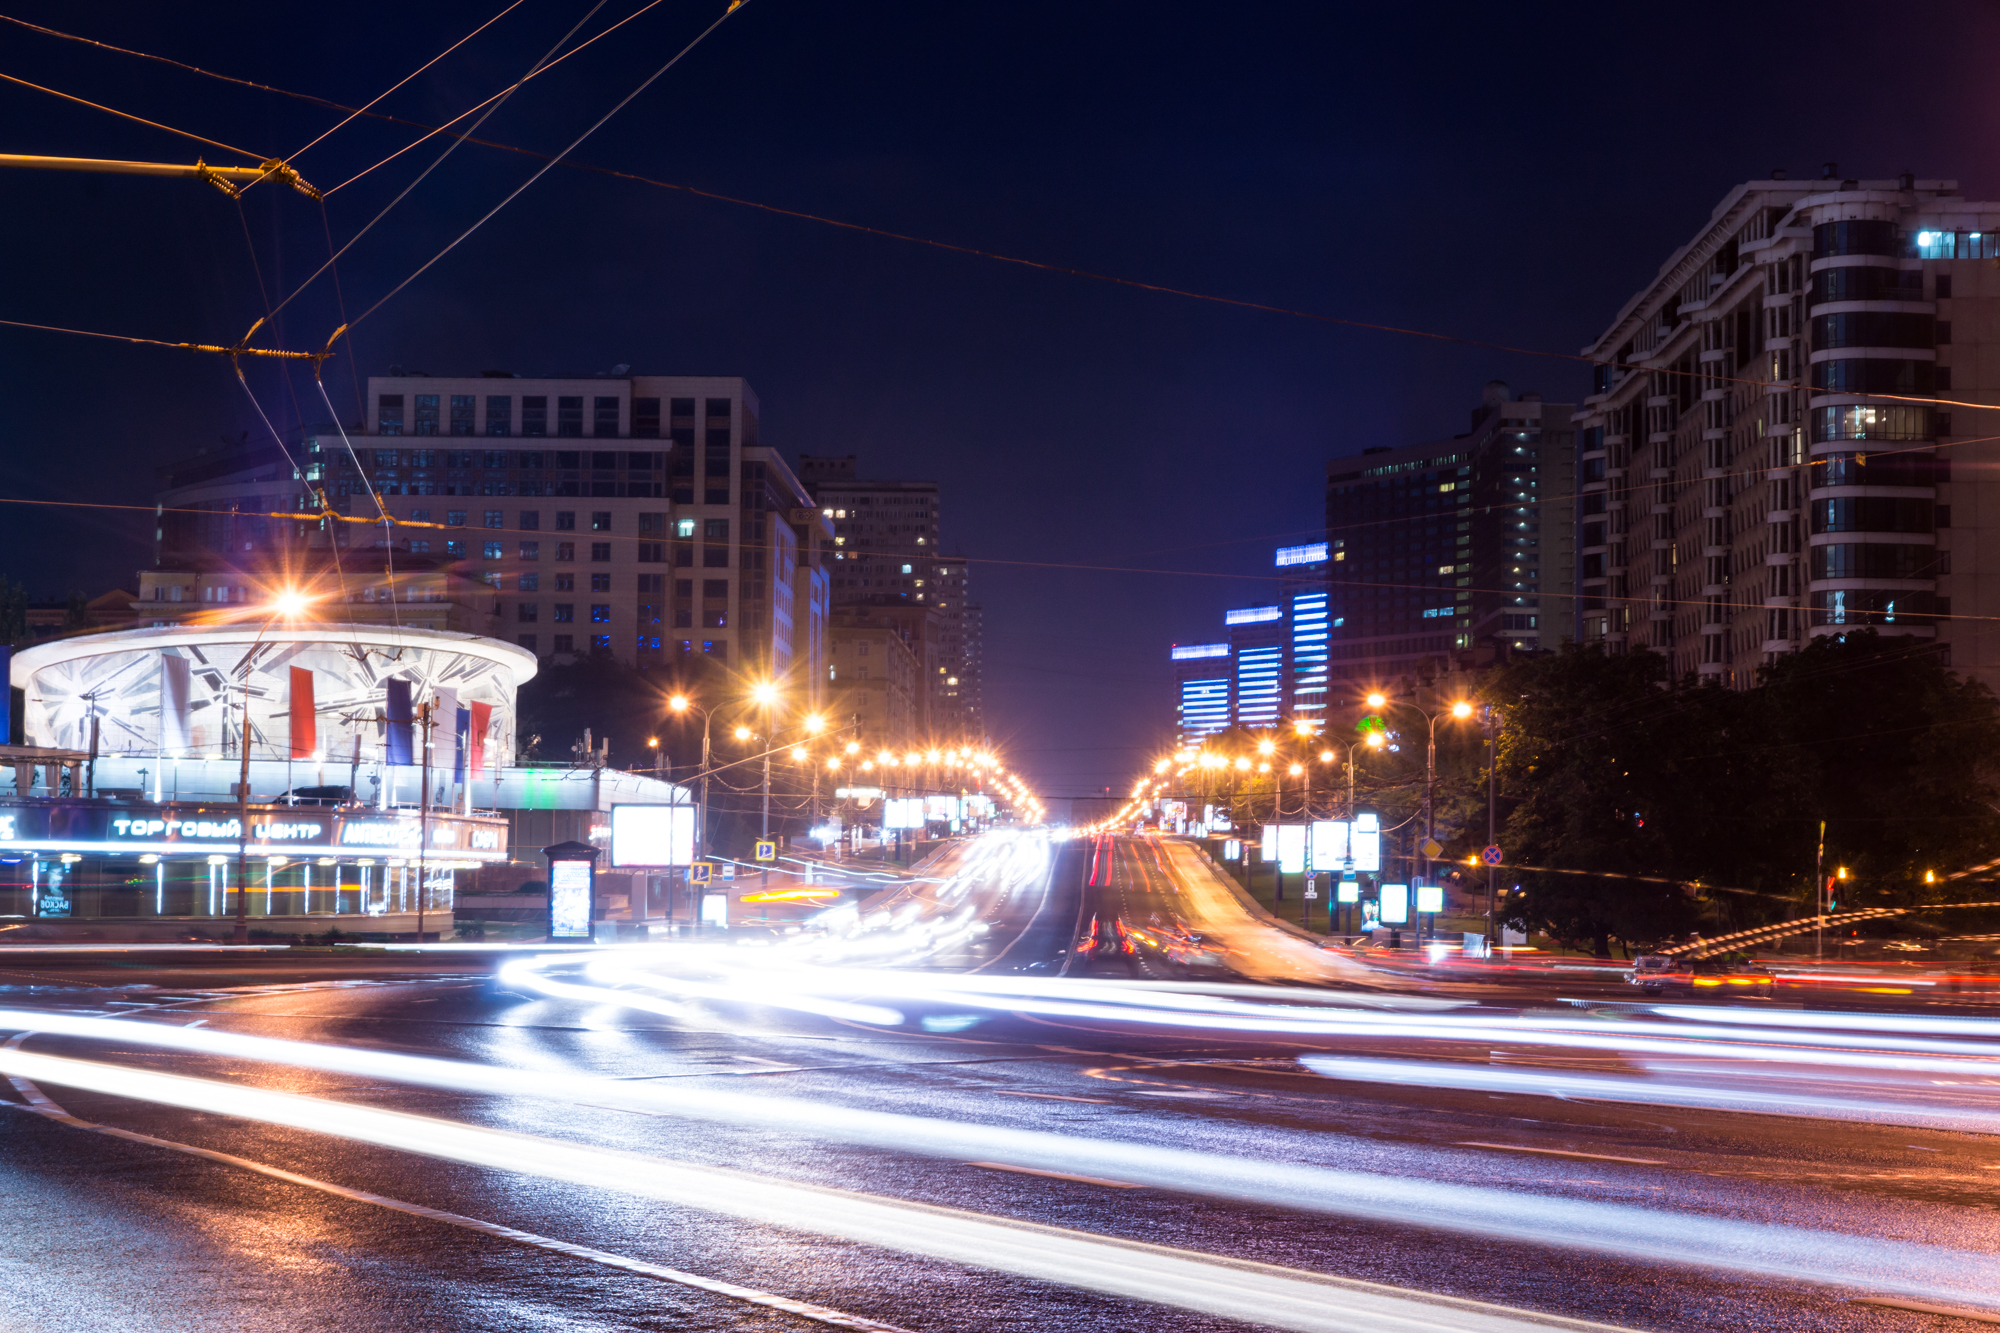 Night view of the Novy Arbat street